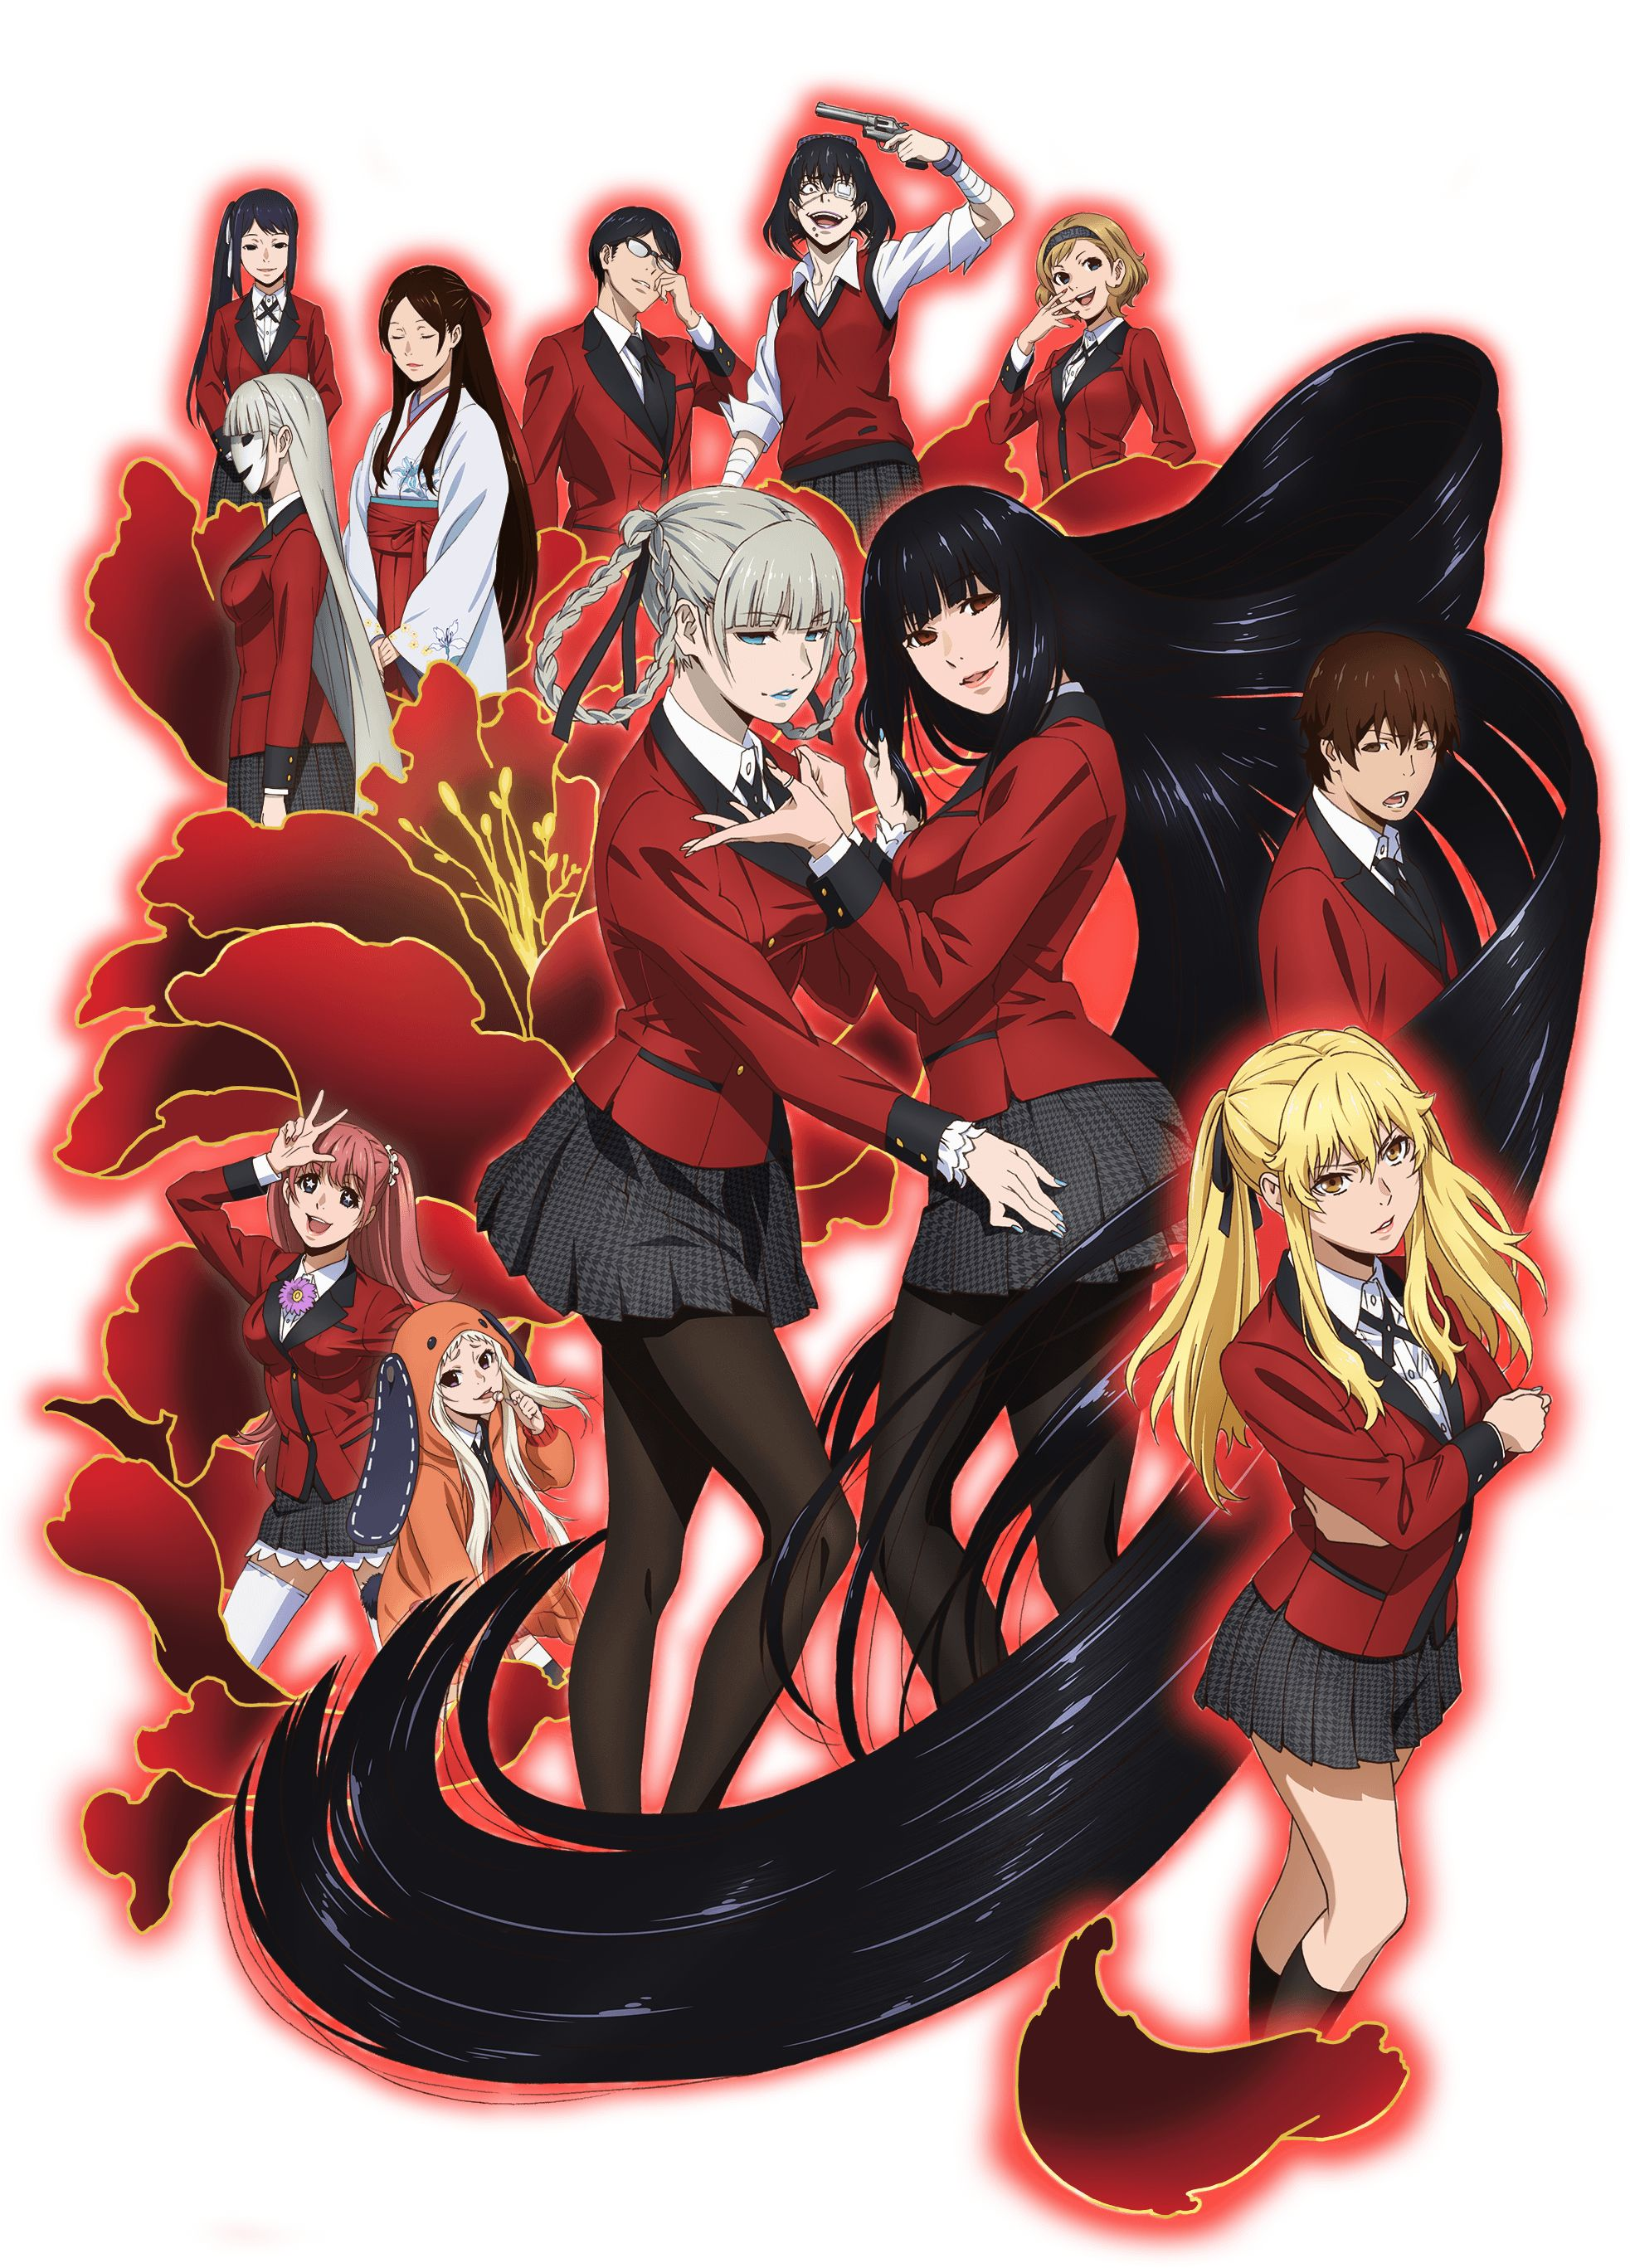 Anime Opening And Ending Of The Week; Kakegurui Anime